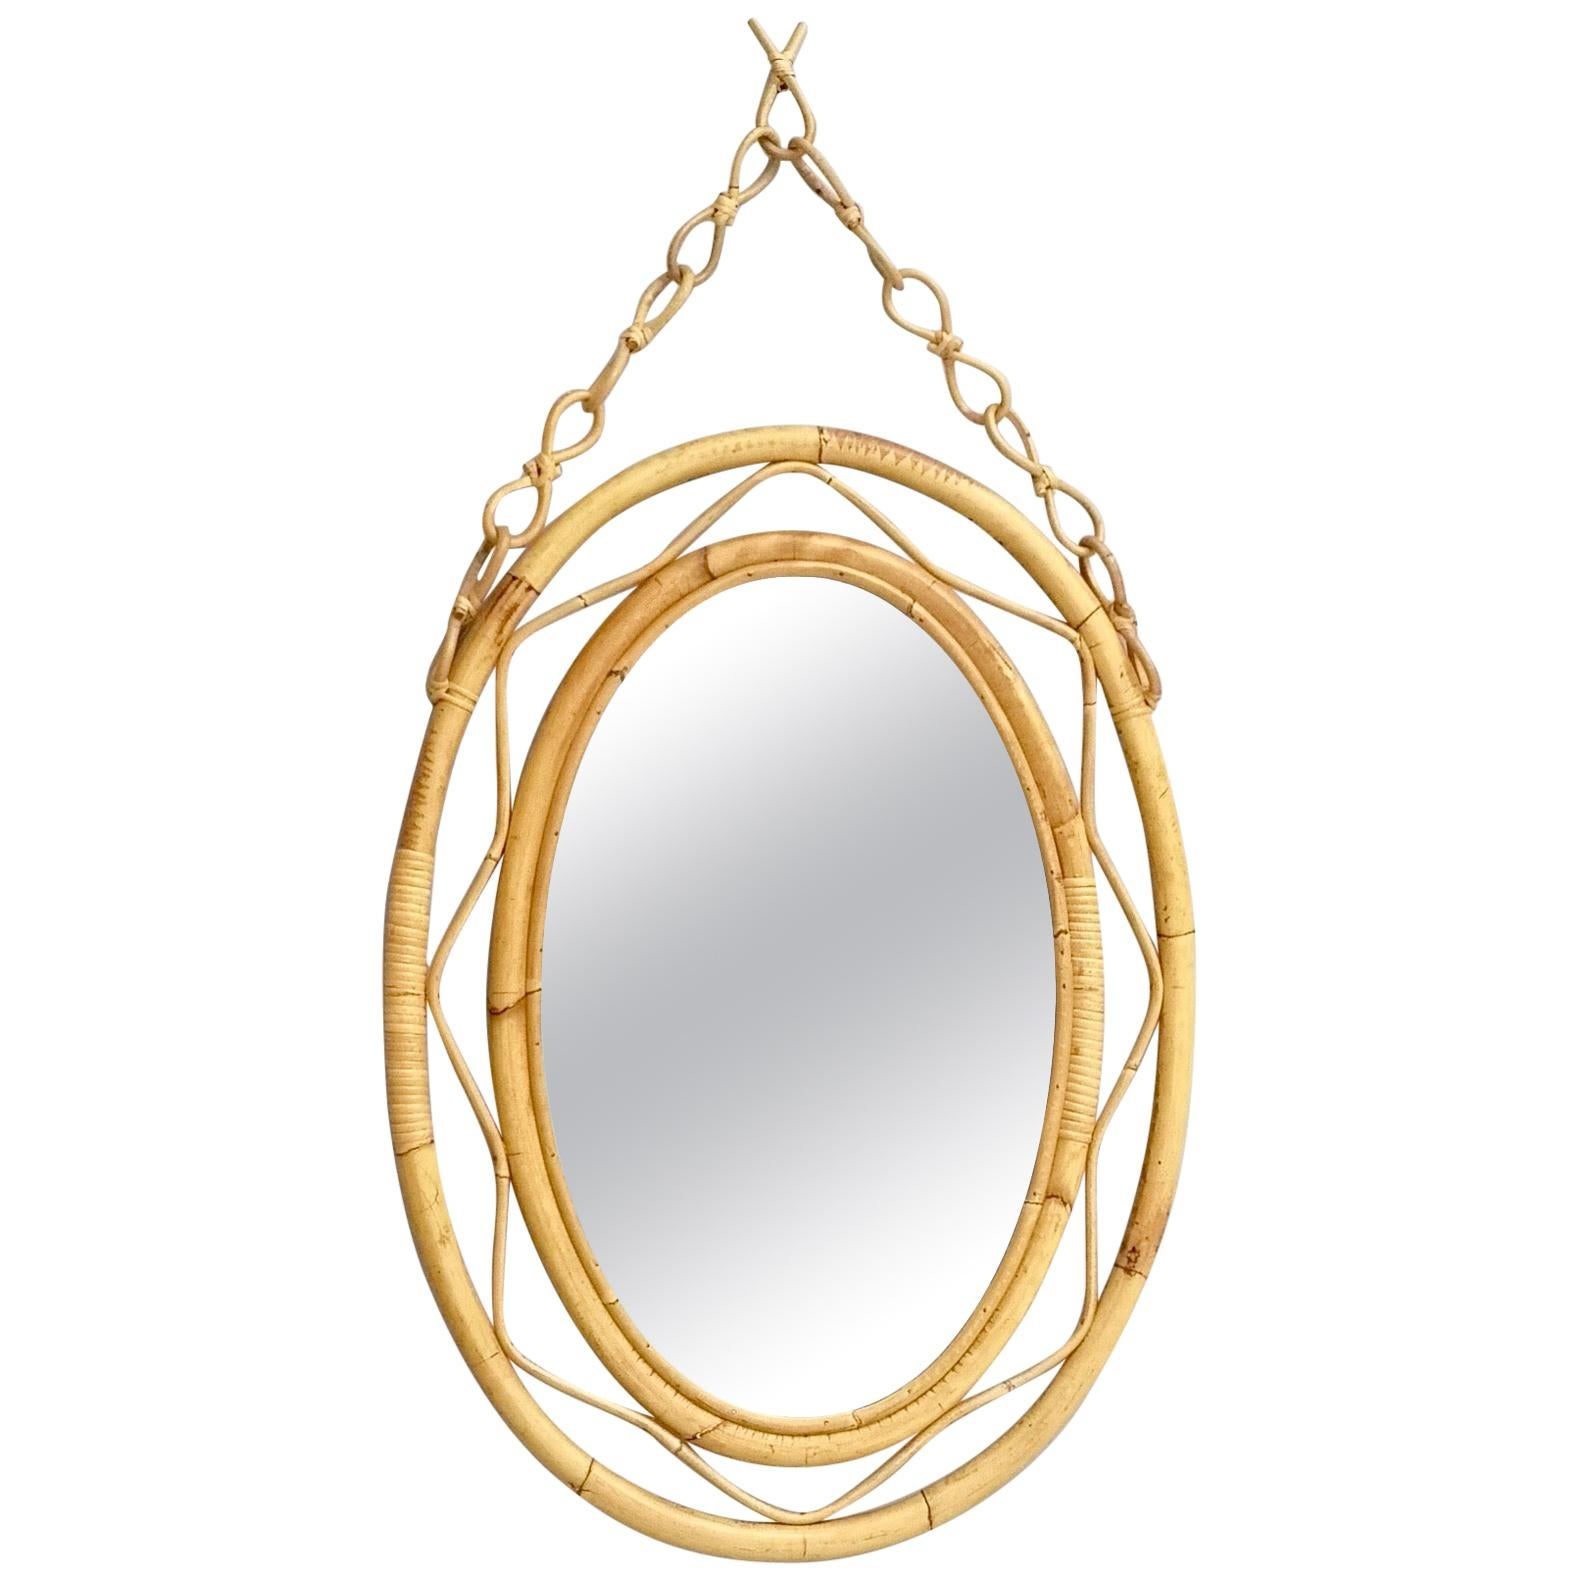 Midcentury Oval Wall Mirror with a Wicker Frame and Hanger, Italy